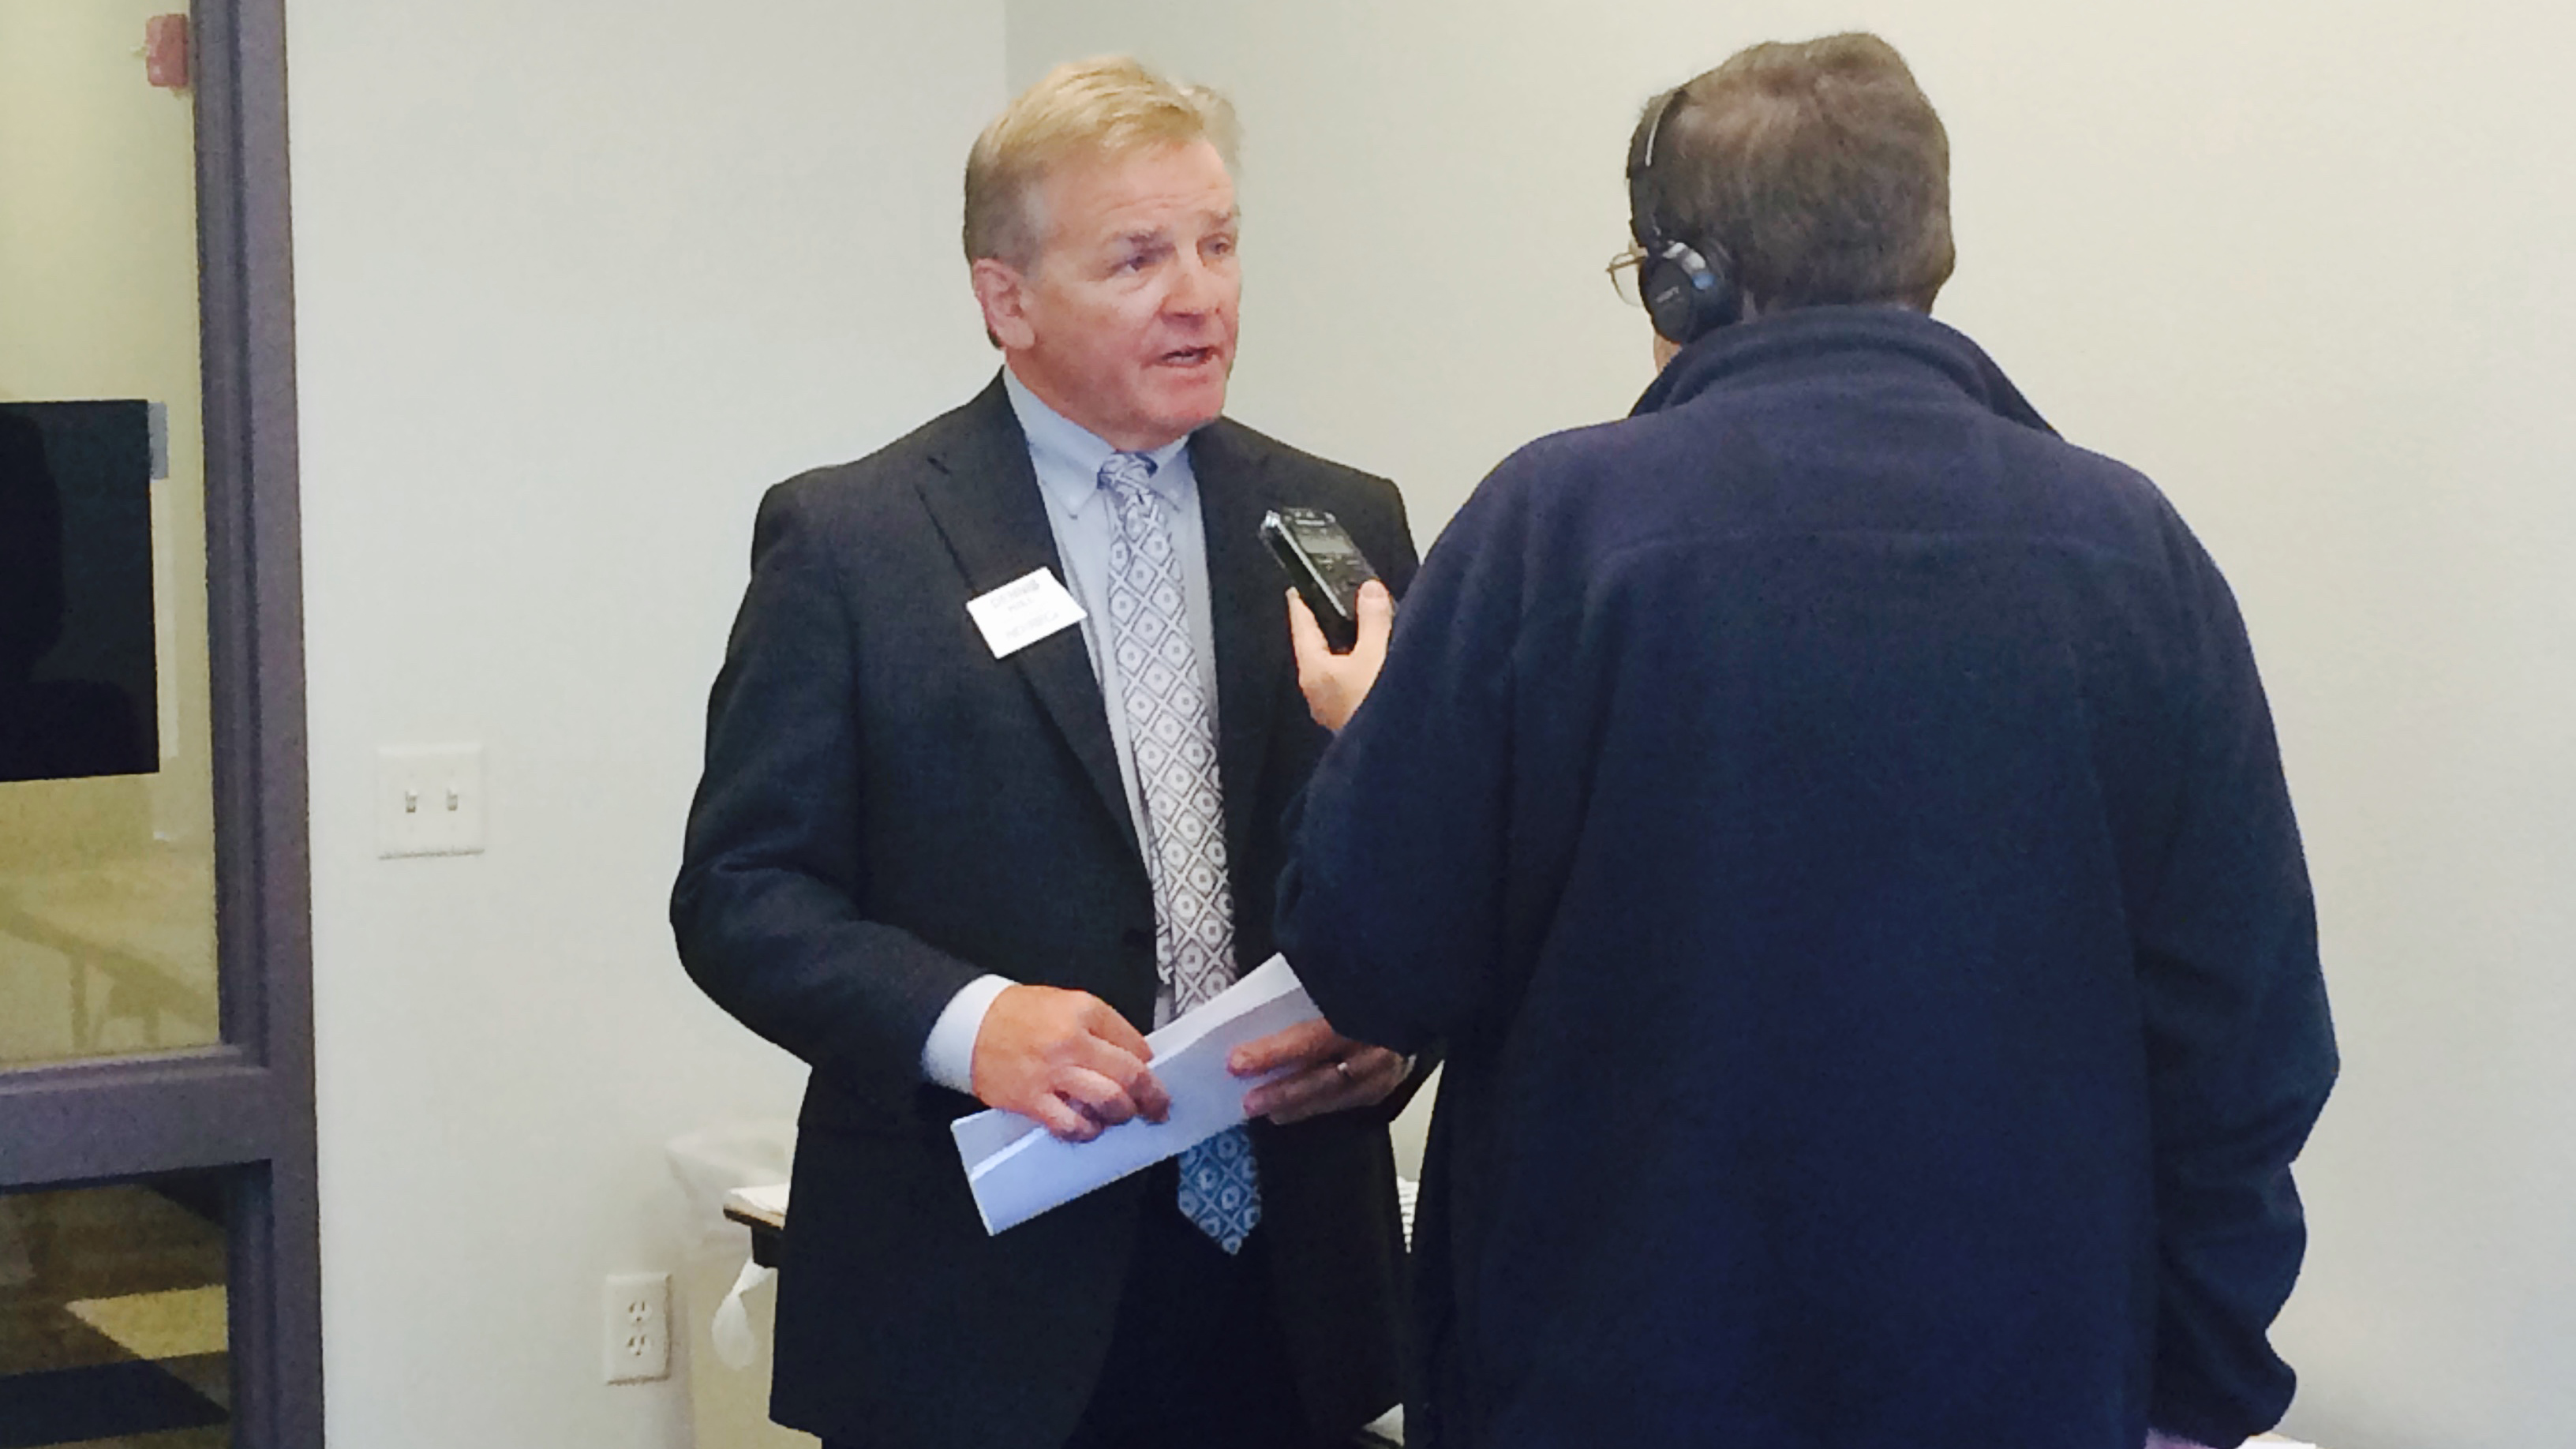 Dennis Hill, executive vice president and general manager of the North Dakota Association of Rural Electric Cooperatives, is interviewed by North Dakota Public Radio before a discussion of Pew's Clean Economy Rising research (Oct. 22, 2014).